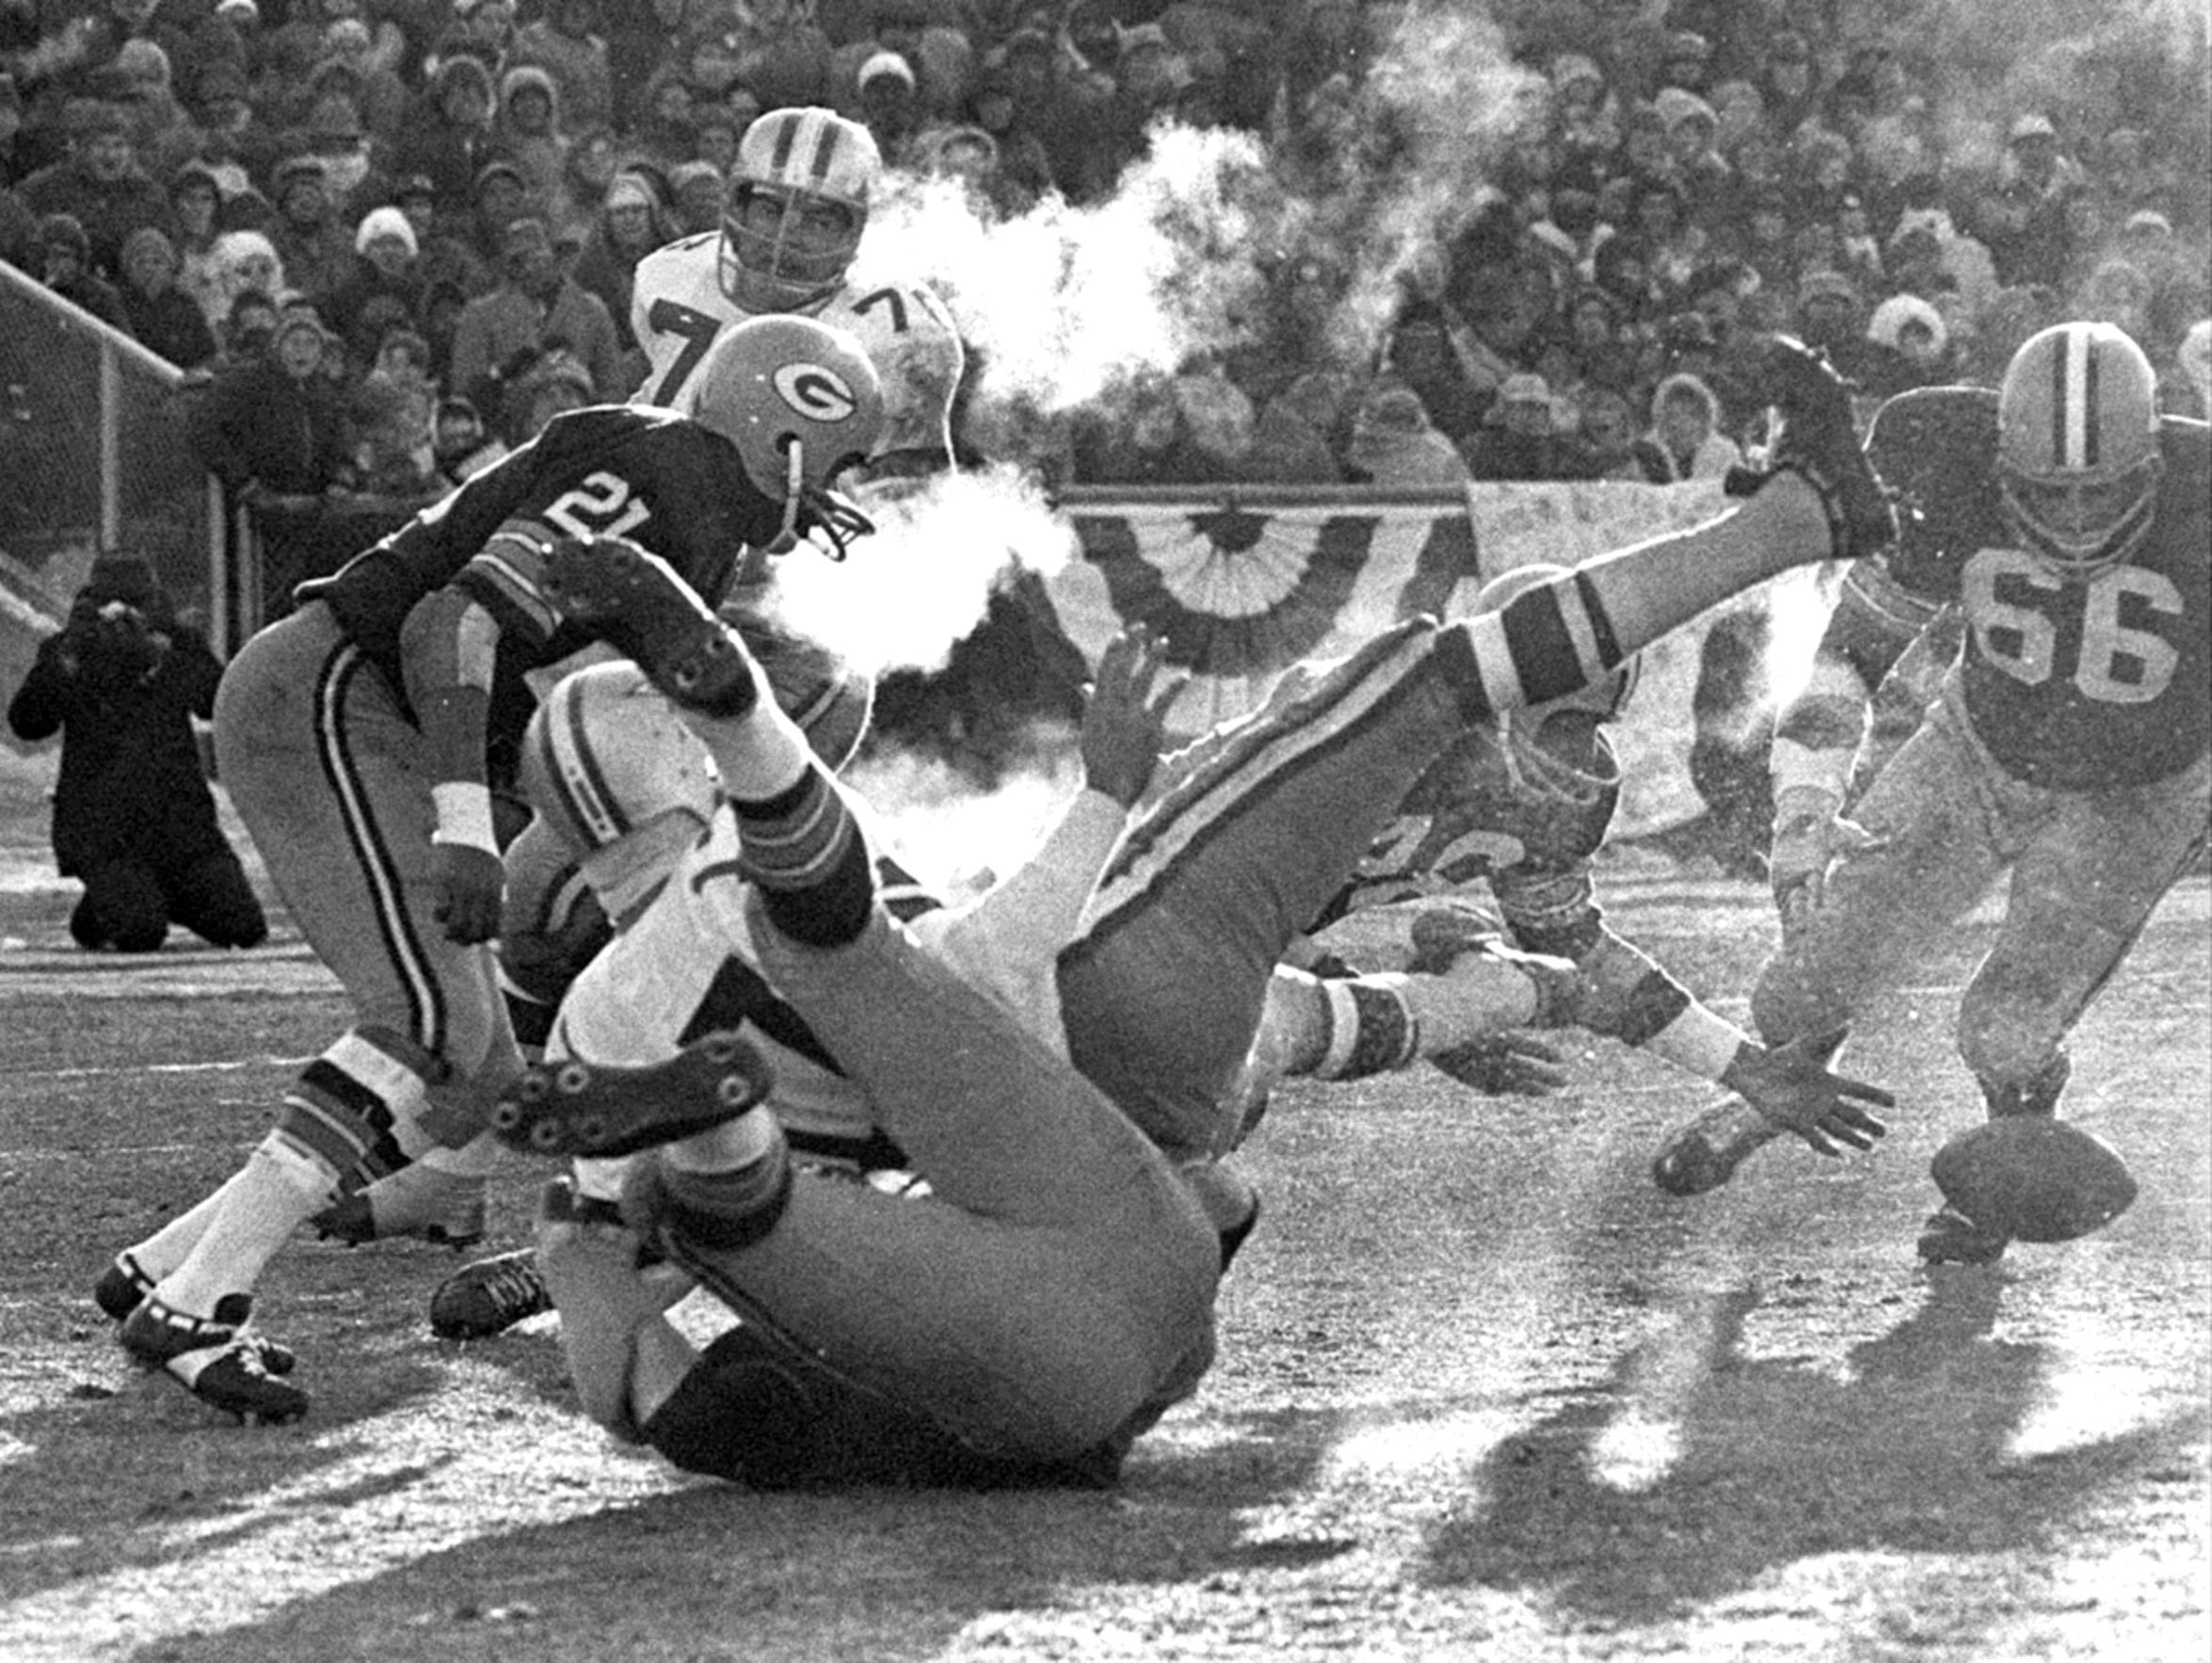 Players spill in all directions after Packers linebacker Lee Roy Caffey forces a fumble by Cowboys quarterback Don Meredith in the third quarter of the 1967 NFL Championship Game on Dec. 31, 1967 at Lambeau Field. Packers defensive back Herb Adderley recovered the ball but Green Bay failed to score off the turnover.